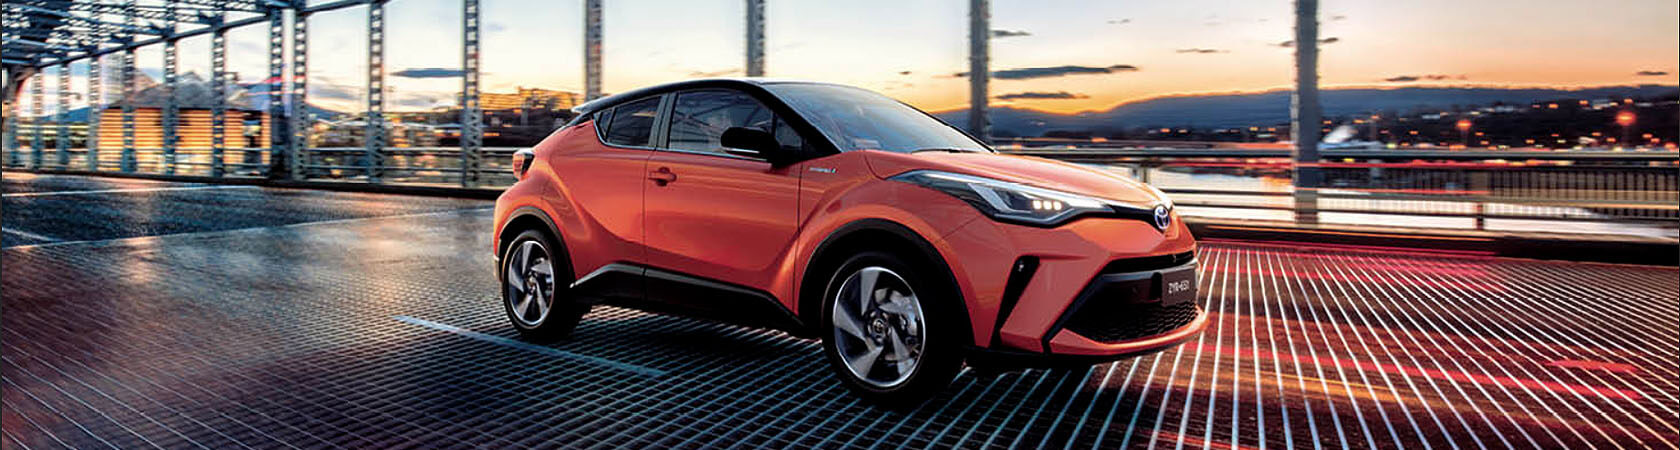 Macquarie Toyota C-HR